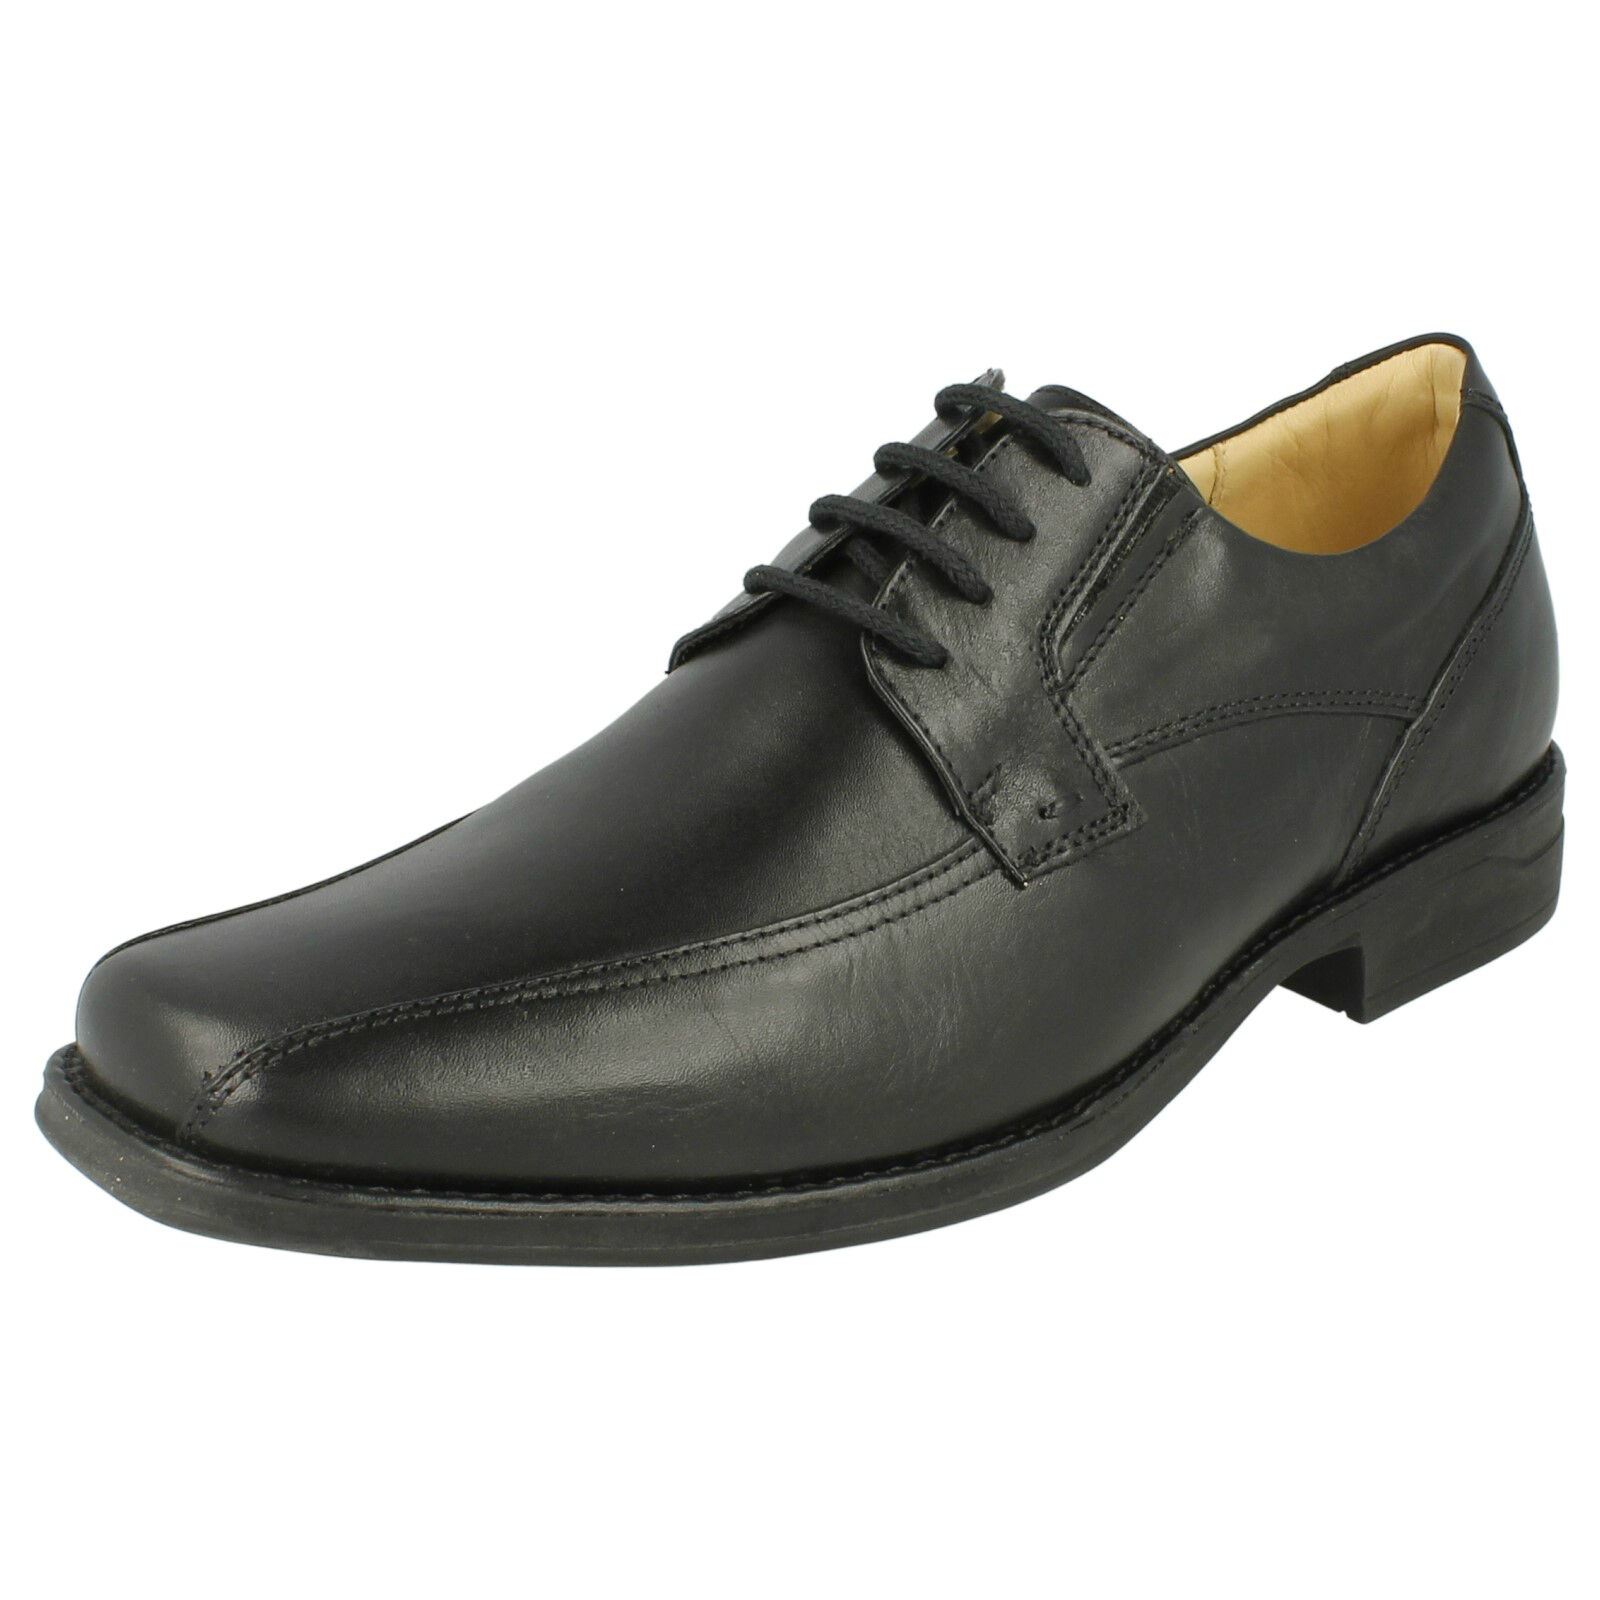 Mens Anatomic Or & Co Platina Black Or Anatomic Coffee Brown Leather Smart Lace Up Shoes 43881b